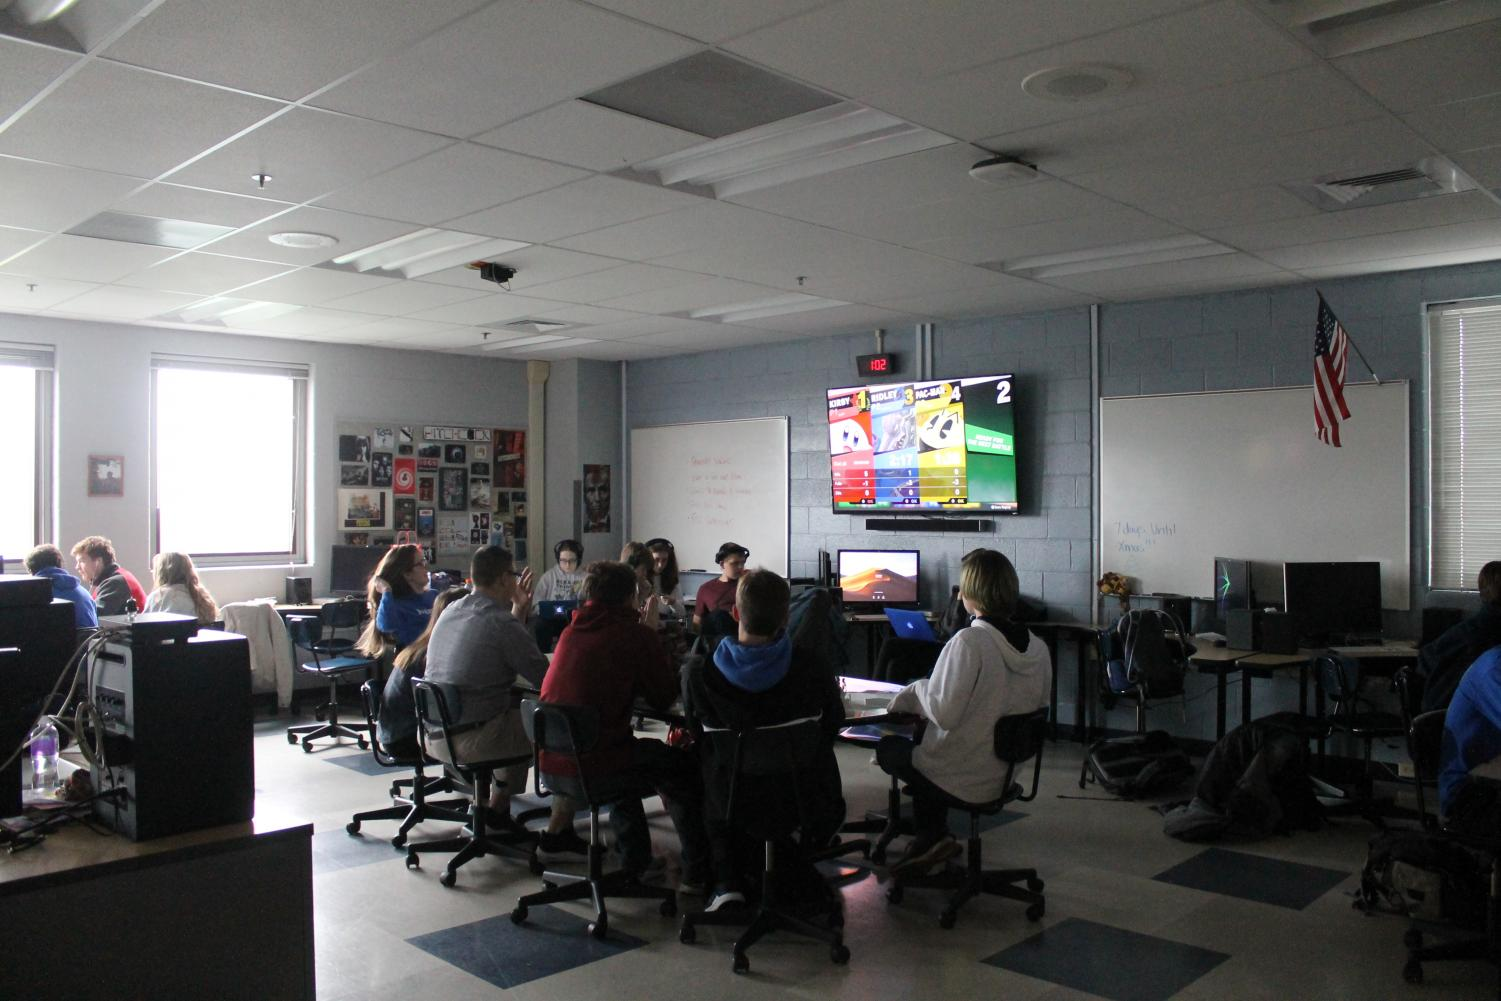 Mr. Poff's Advisory class plays a game of Mario Kart to relax during a stressful week.